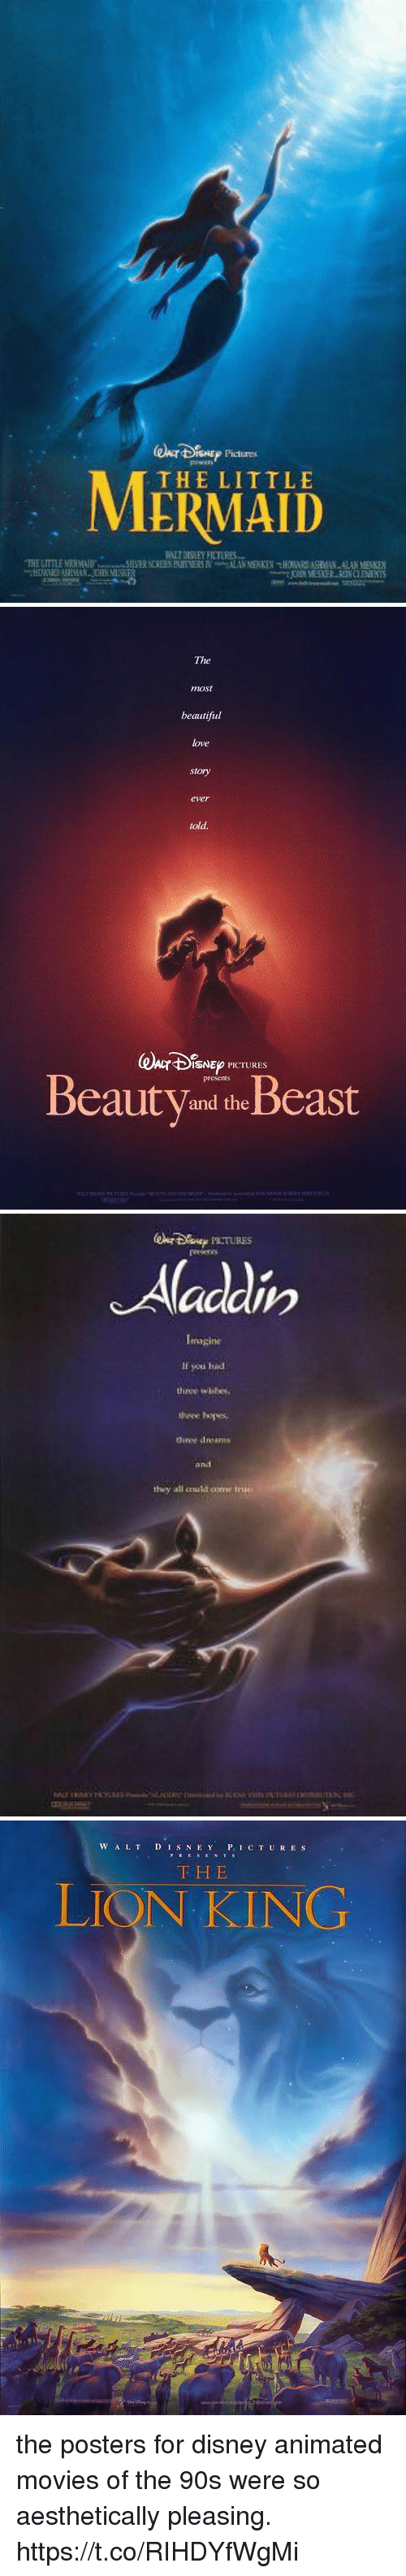 Beautiful, Disney, and Funny: Pictures  THE LITTLE   The  most  beautiful  love  story  ever  told  @kr4%Nep PK TURES  BeautV and theBeast   If you hid  three wblbes  theee ys  they all could come   W A LTD IS N E Y P. IC T UR ES  F H E  LIQN KING the posters for disney animated movies of the 90s were so aesthetically pleasing. https://t.co/RIHDYfWgMi